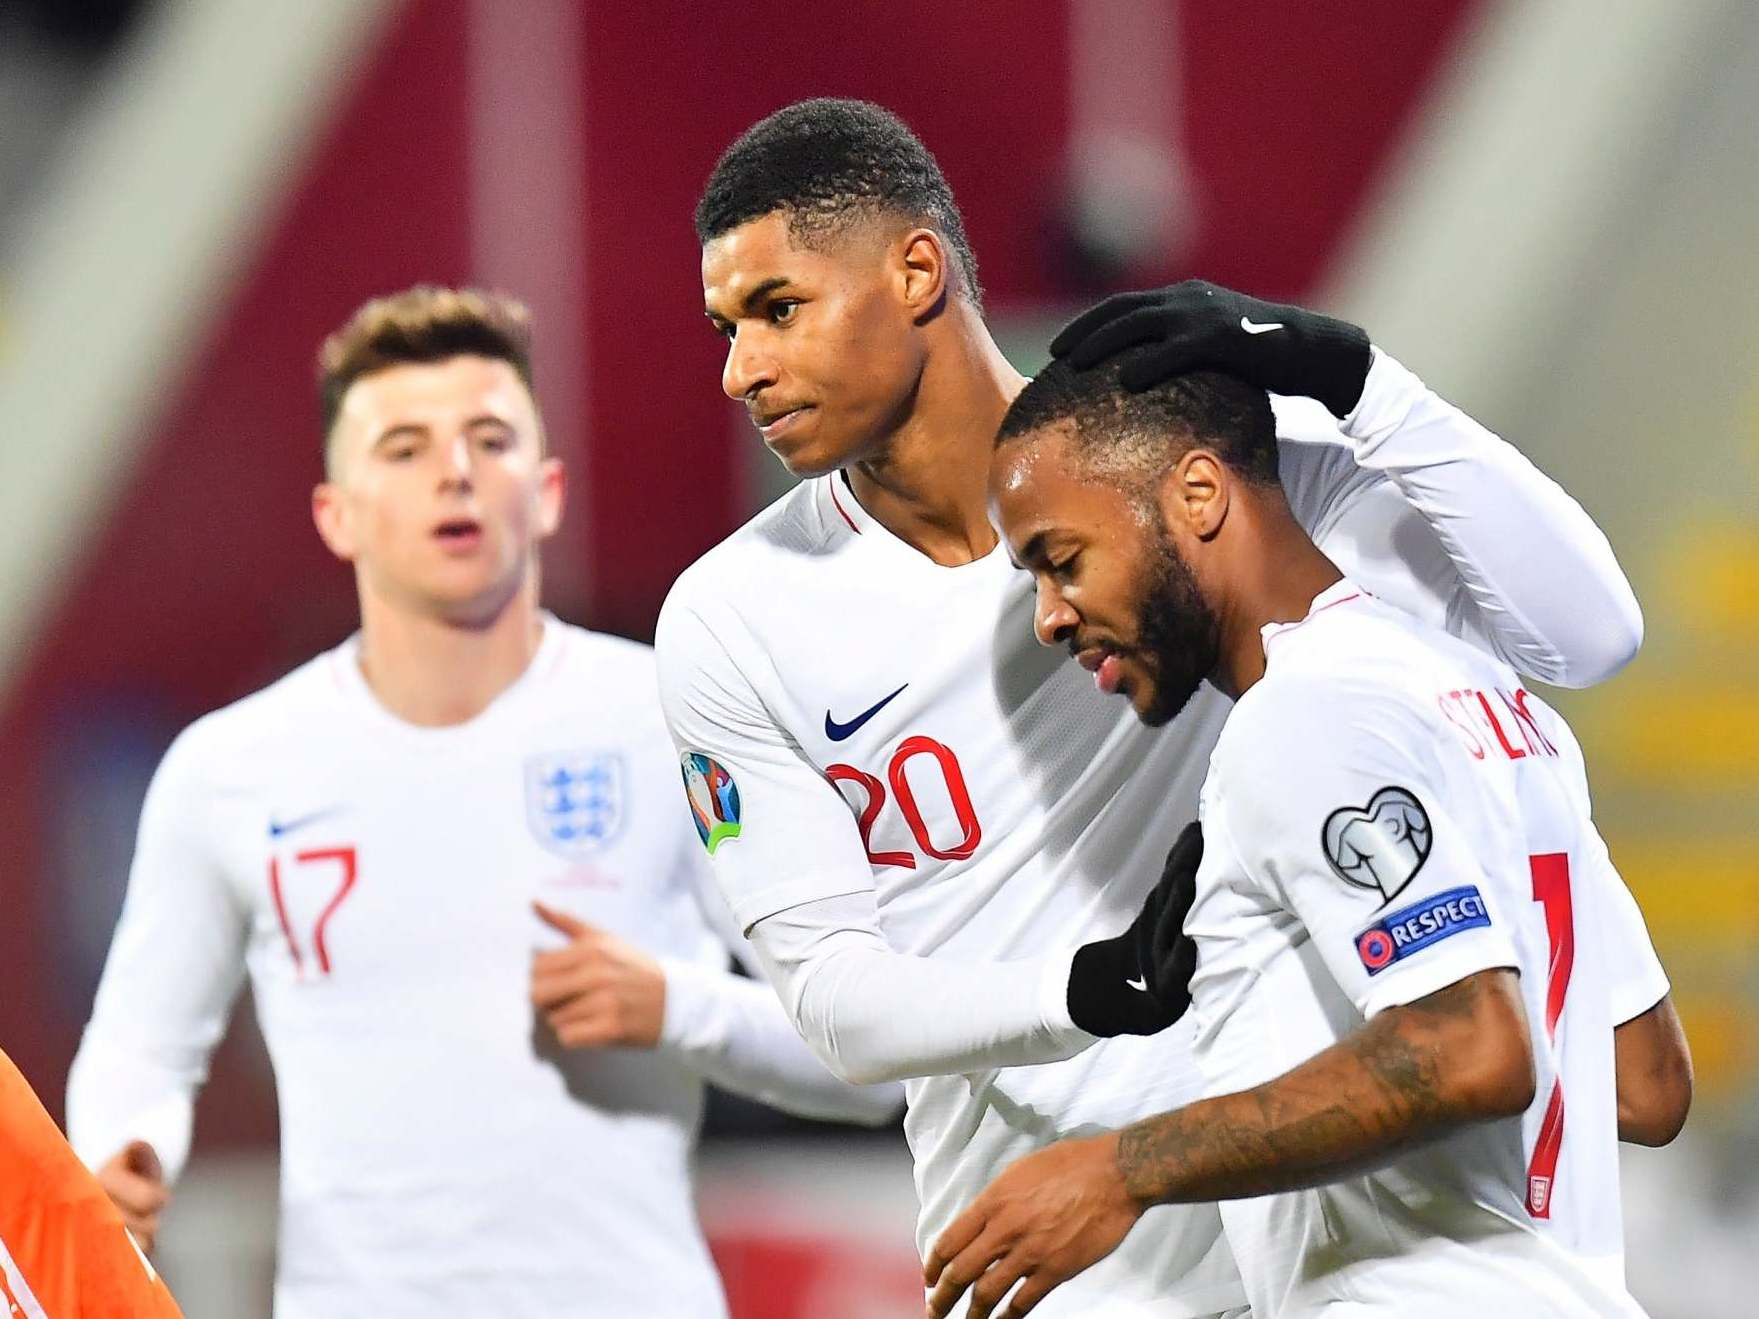 Marcus Rashford backs England's 'frightening' attack to put Euro 2020 rivals on notice